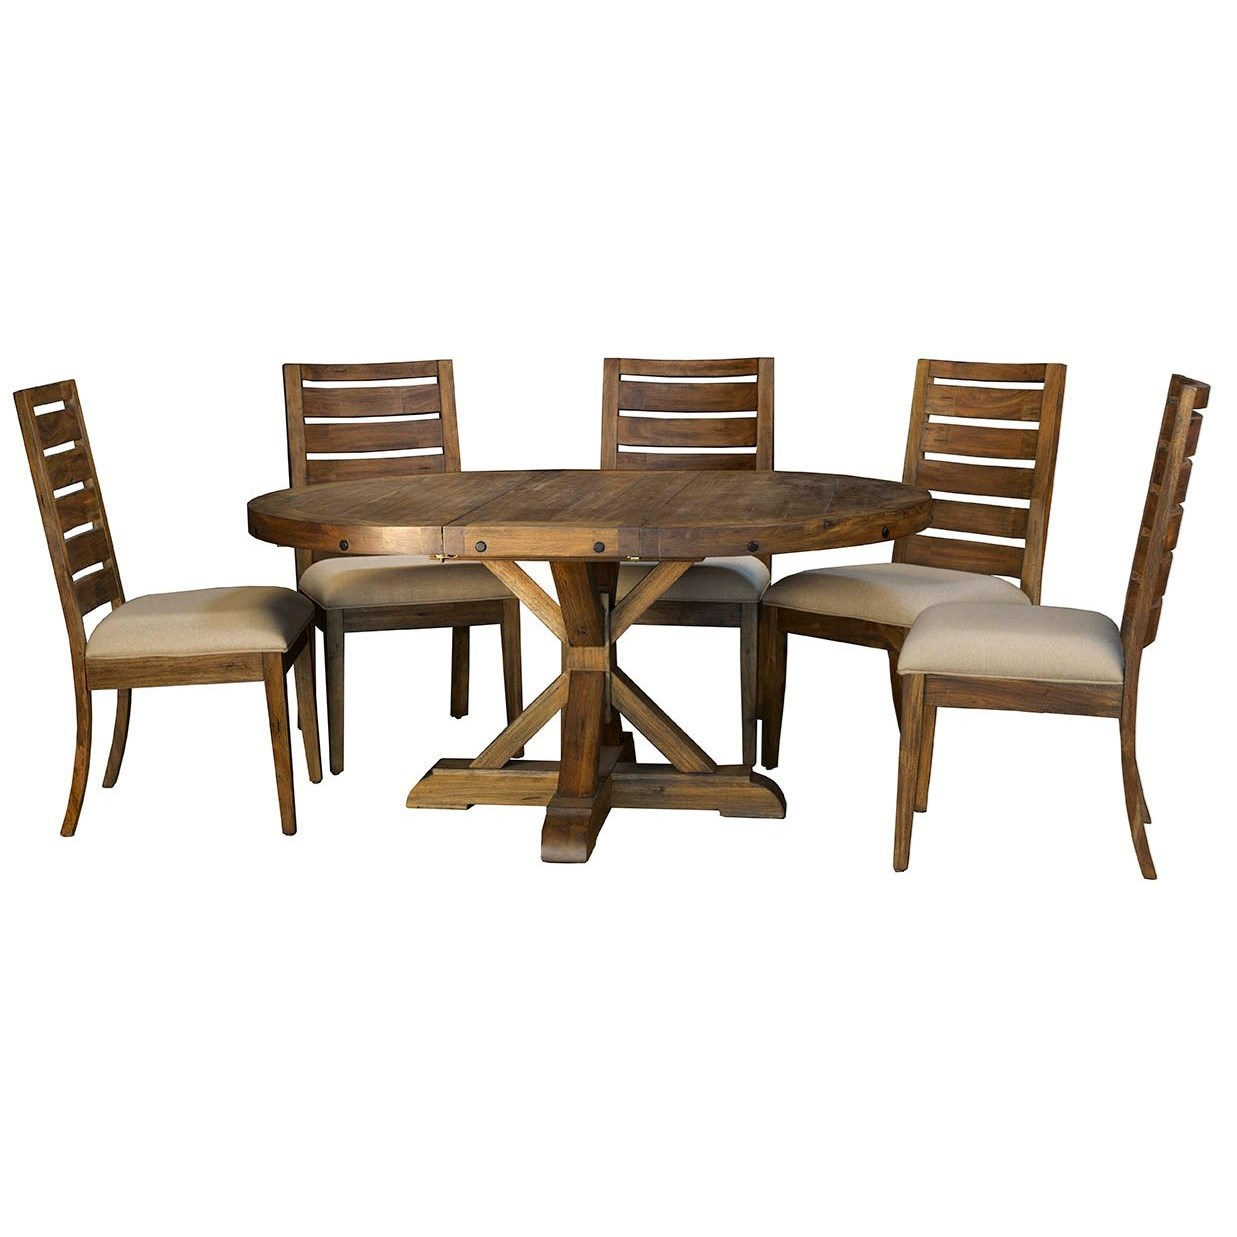 Charming AAmerica Anacortes 6 Piece Dining Set   Item Number: ANA SM 6